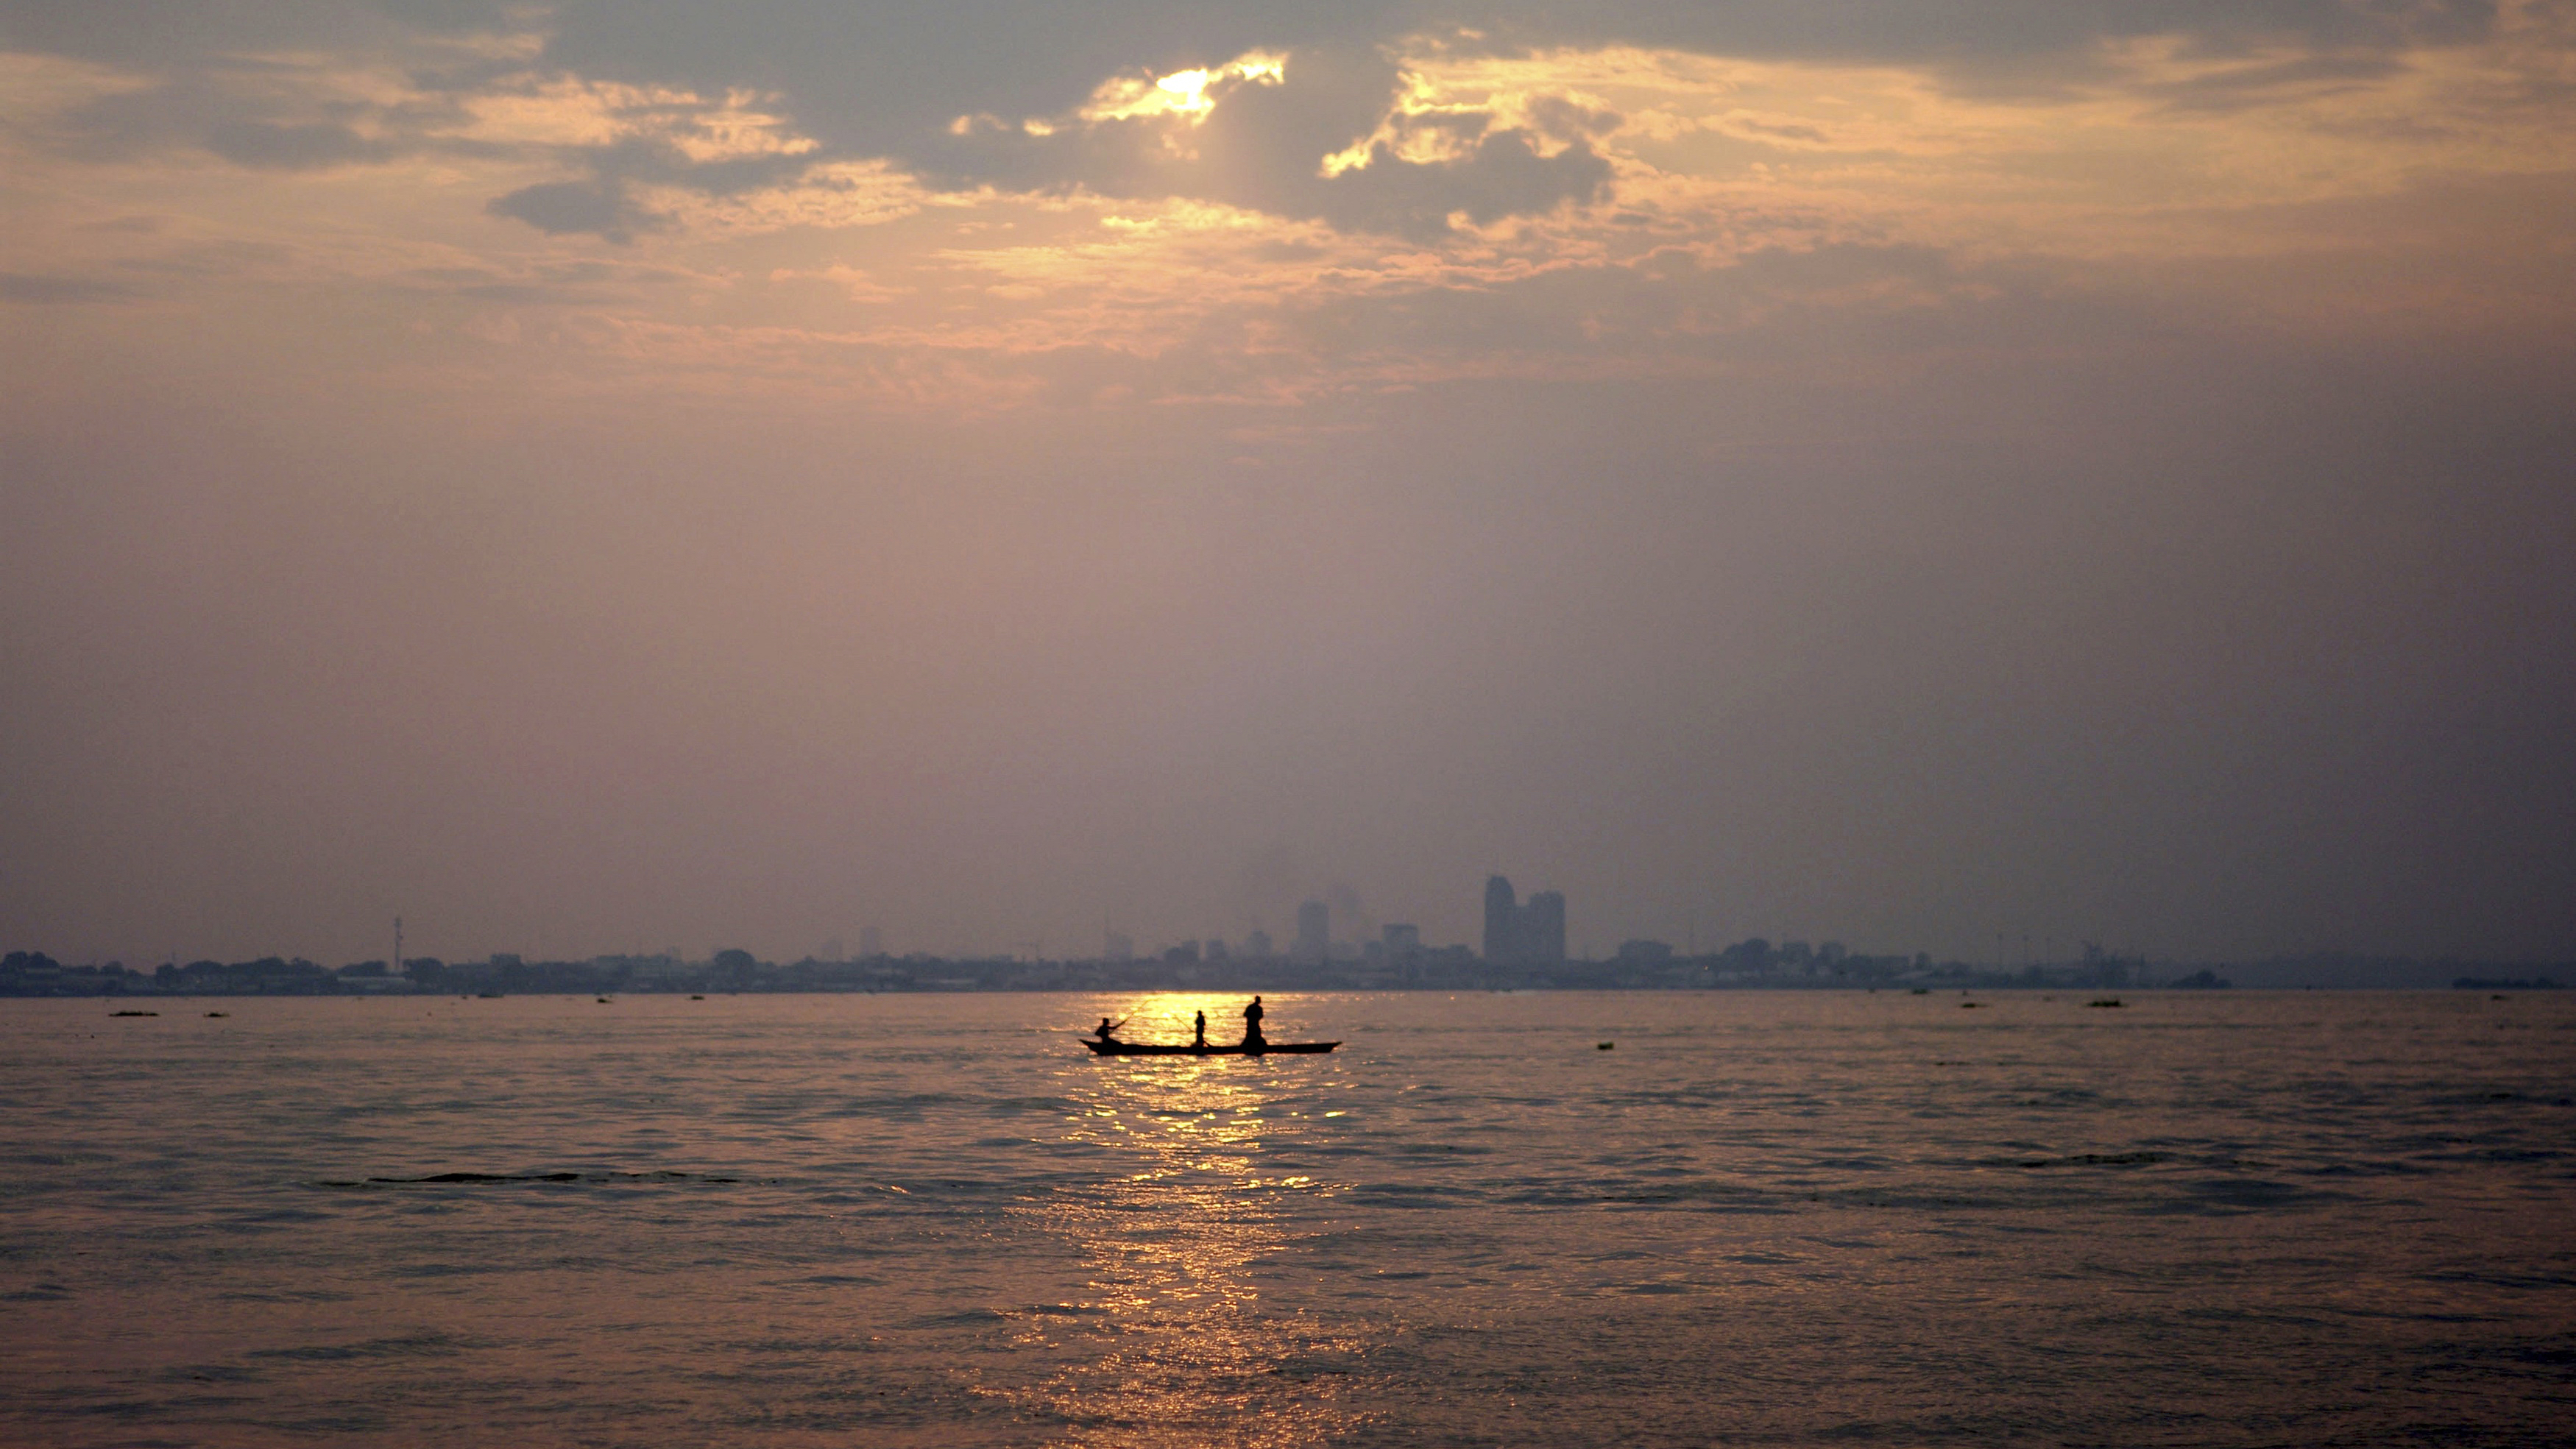 A wooden pirogue sails at dusk on the Congo River against the backdrop of high rises in the Democratic Republic of Congo's capital Kinshasa, March 7, 2010. Picture taken March 7, 2010. REUTERS/Katrina Manson (DEMOCRATIC REPUBLIC OF CONGO - Tags: SOCIETY ENVIRONMENT CITYSCAPE) - RTR2BDRC